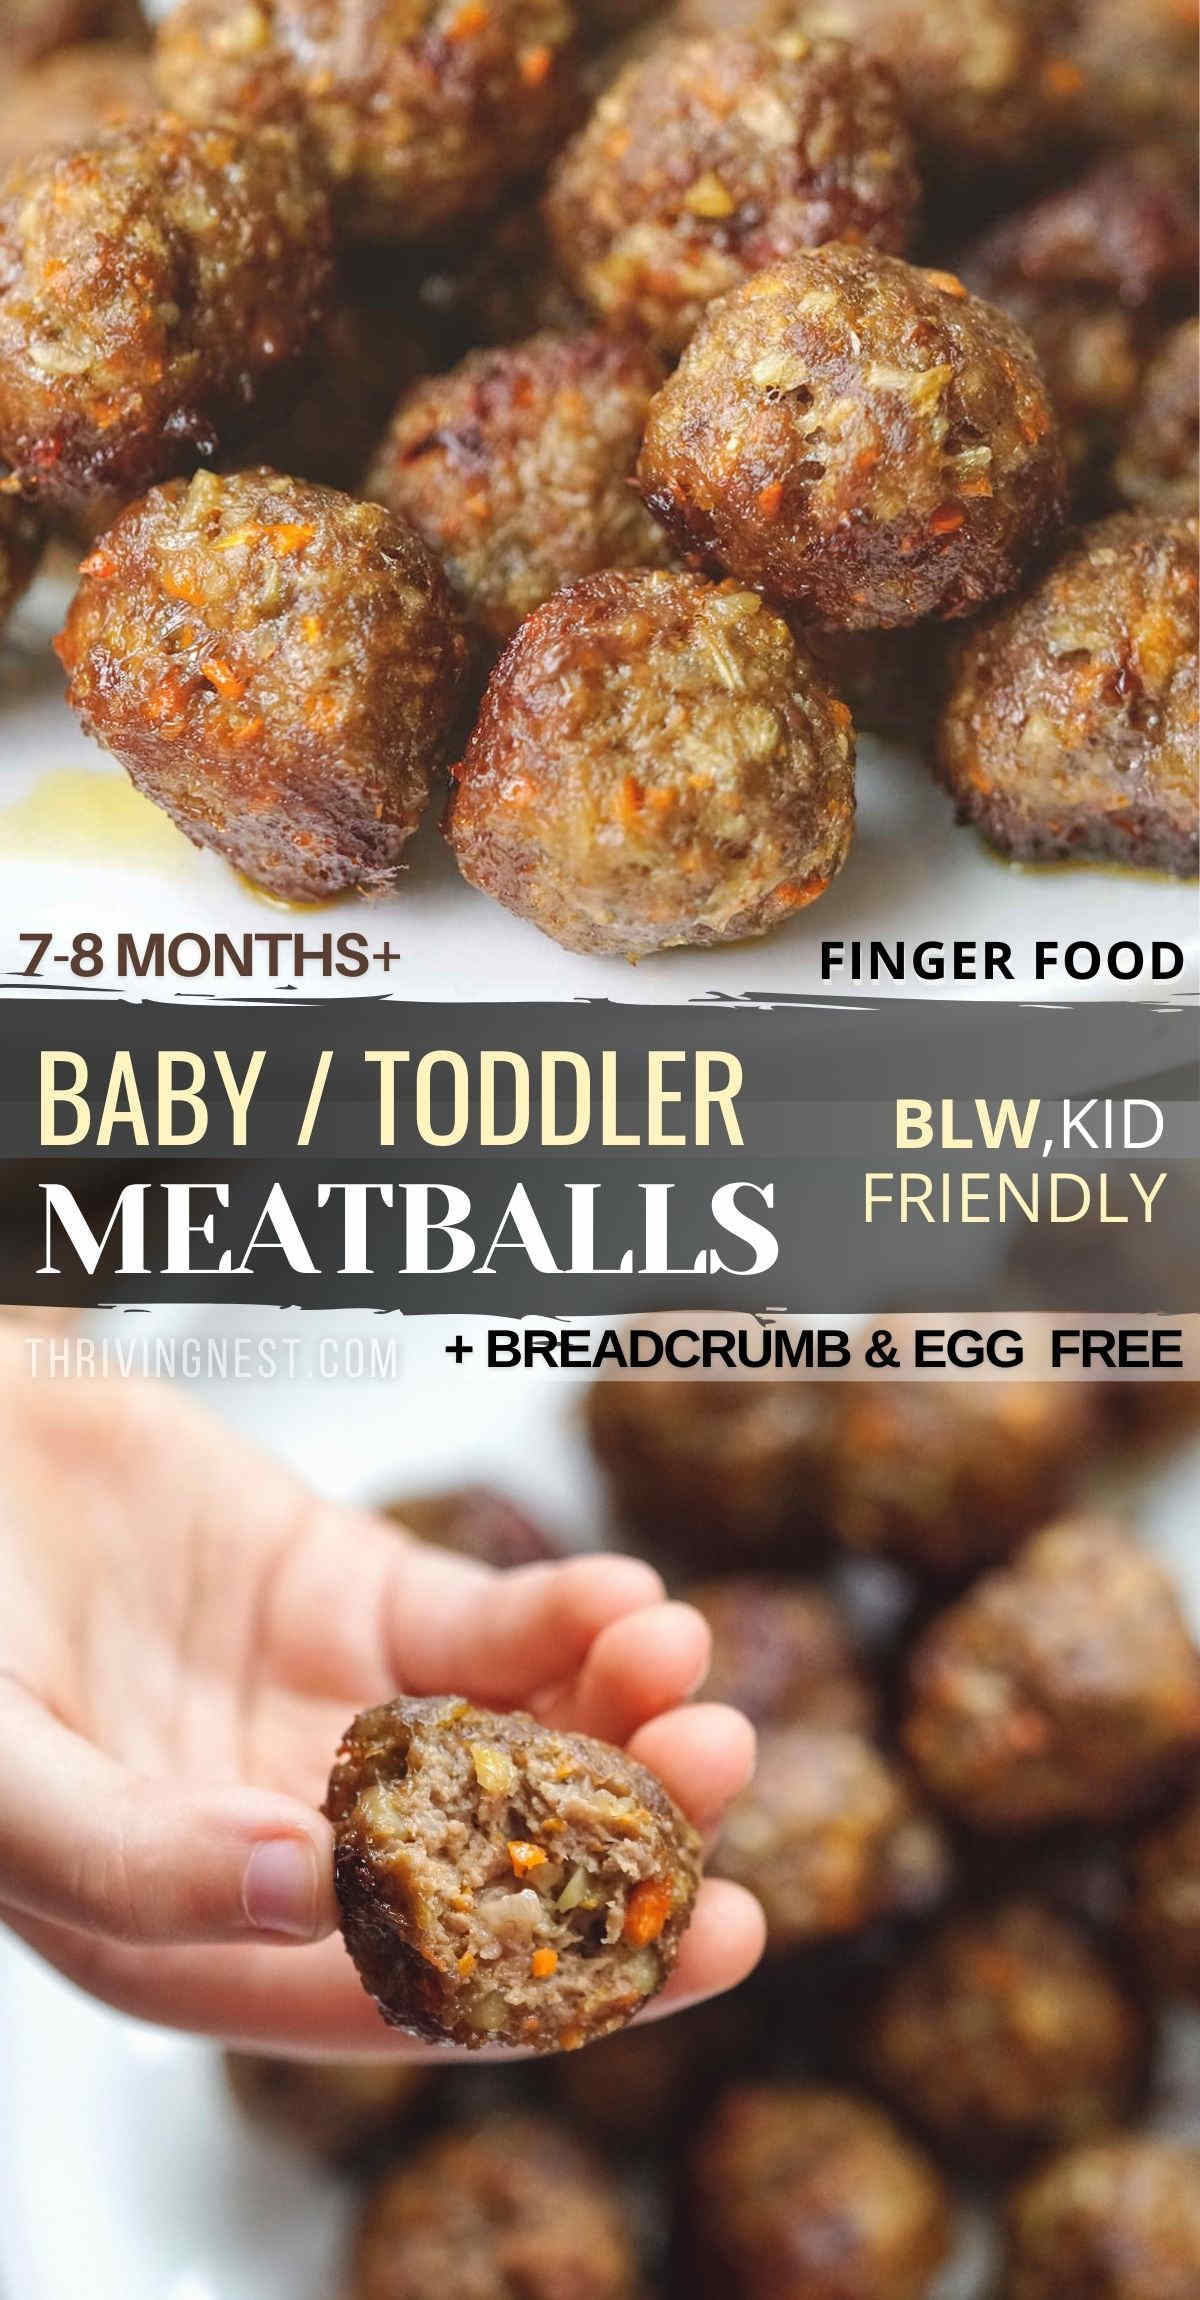 Baked beef meatballs for baby (7 months+), toddler and older kids, great for baby-led weaning too. These kid friendly beef meatballs with extra vegetables will boost the flavor, softness and juiciness. Make this baby meatball recipe without breadcrumbs and egg free. Great for kids school lunch box too. #baby #meatballs #babymeatballs #beefmeatballs #toddler #kids #fingerfood #babyledweaning #blw #eggfree #meatballsforbabyledweaning #baked #meal